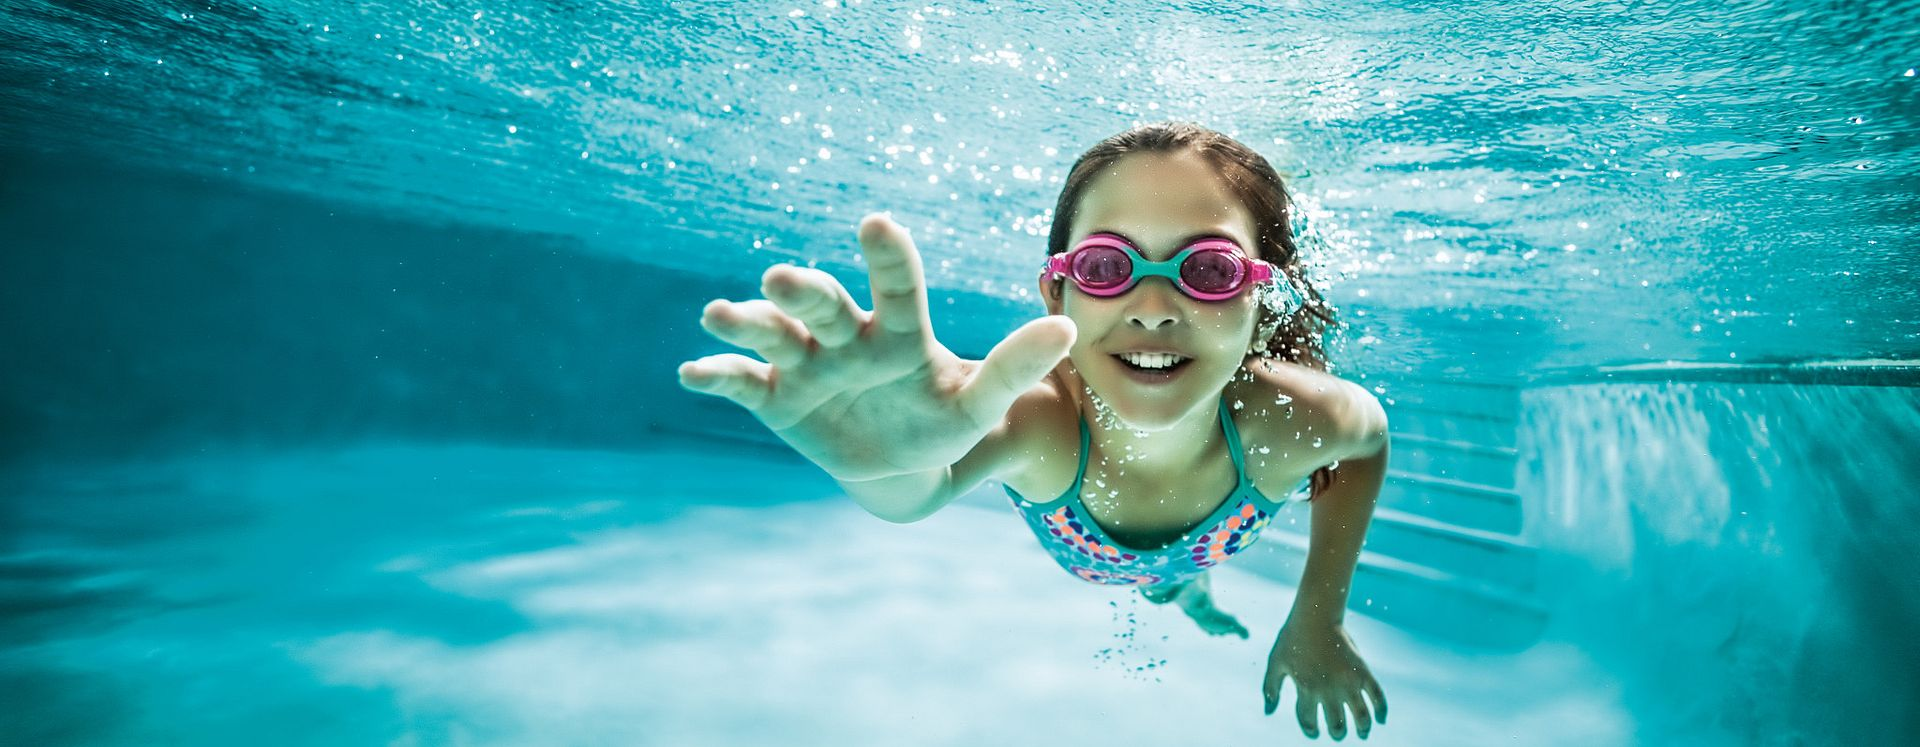 Girl wearing goggles and swimming underwater in a pool.